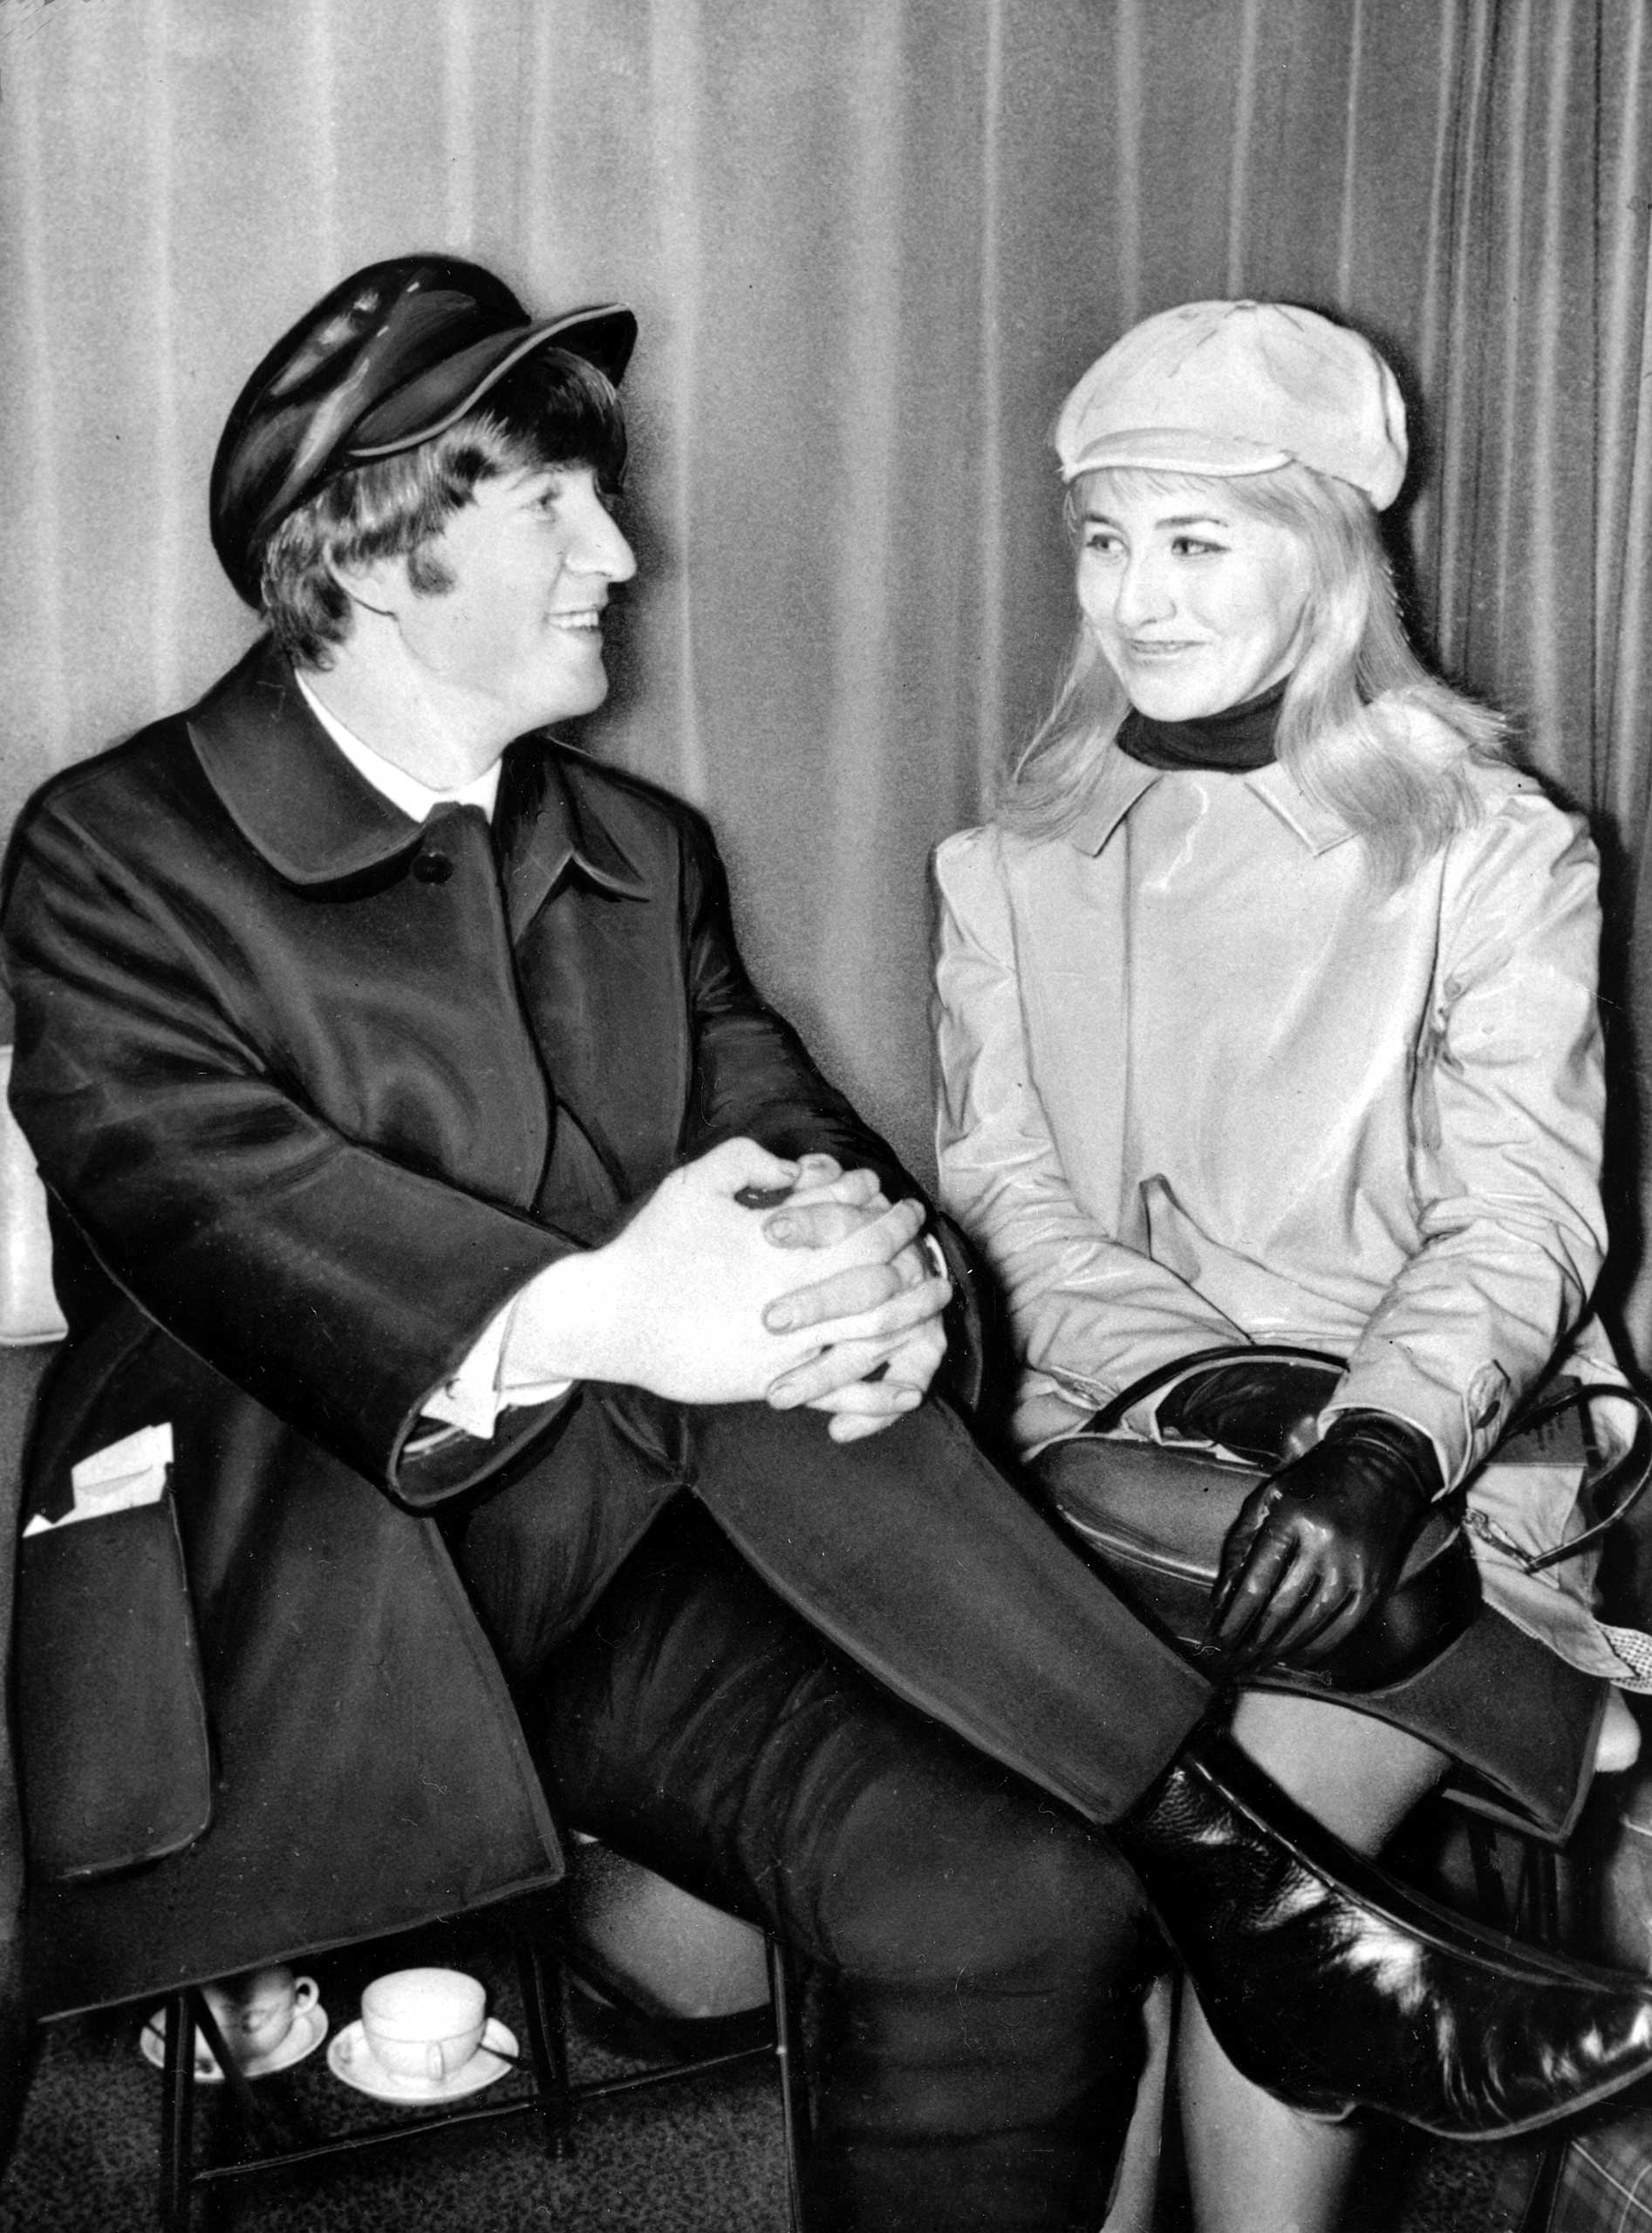 Beatle John Lennon and his wife, Cynthia, sit in London Airport, England, before flying to the U.S. on Feb. 7, 1964.